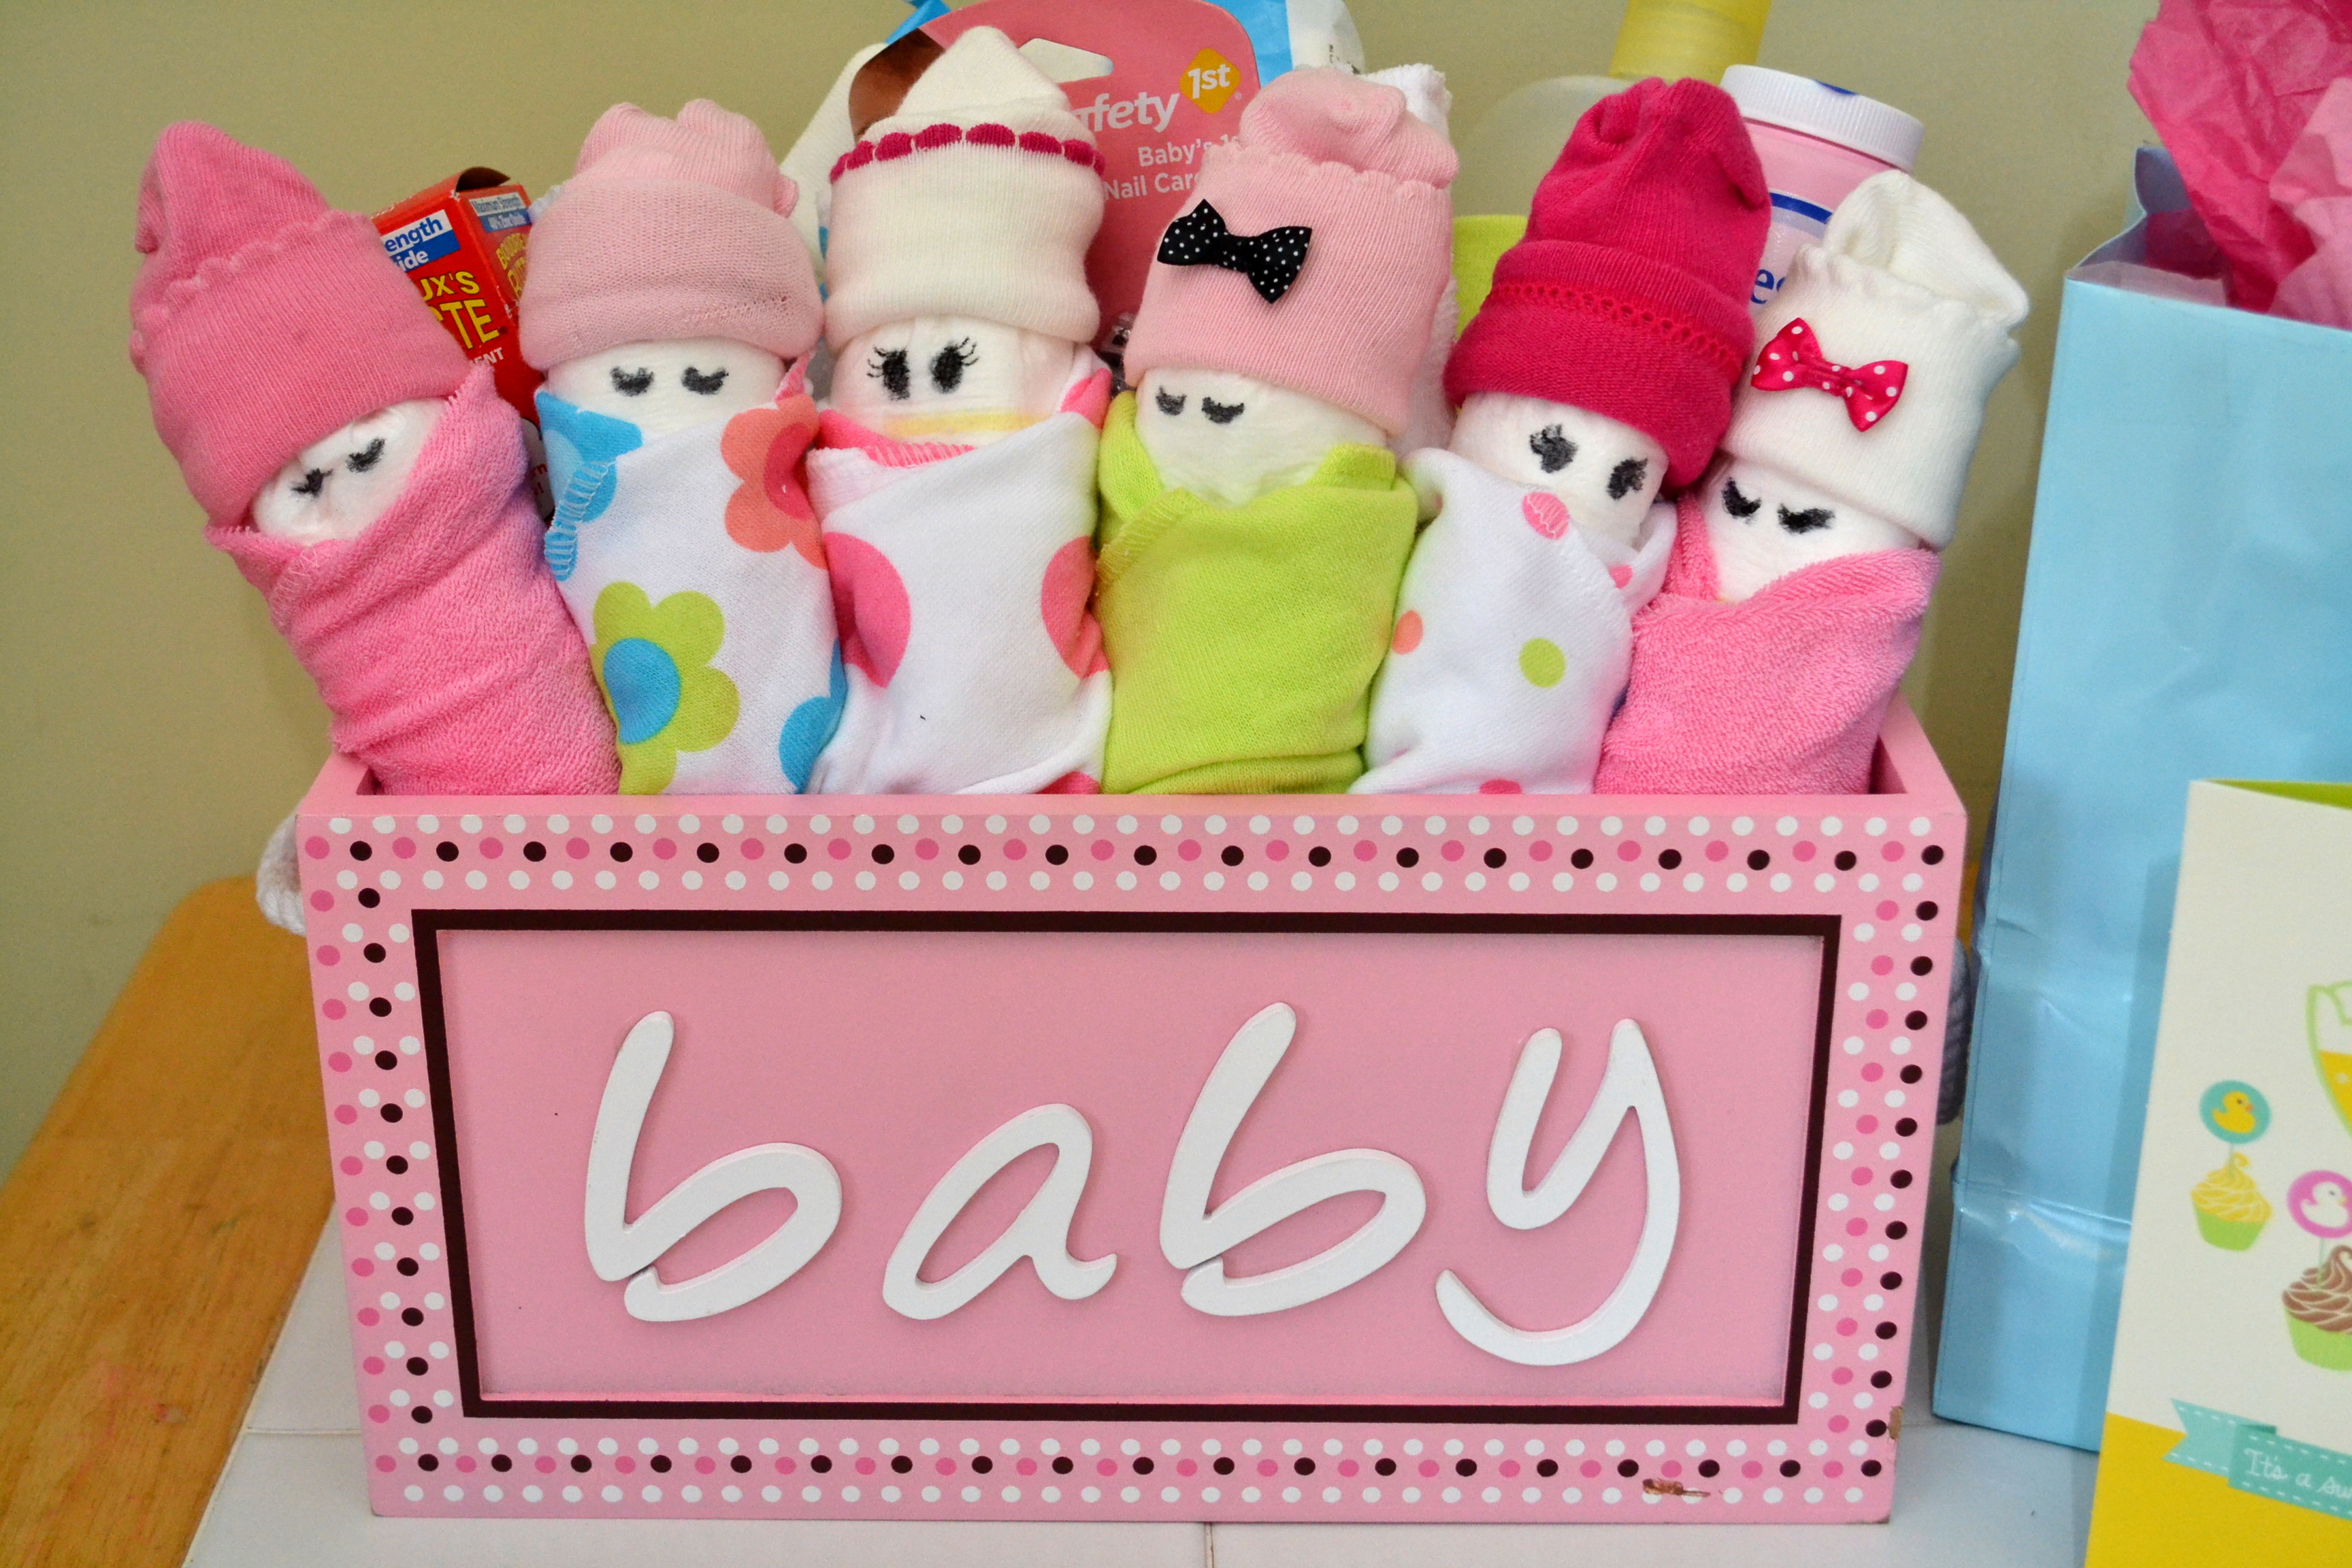 baby shower gift ideas diy  baby center, Baby shower